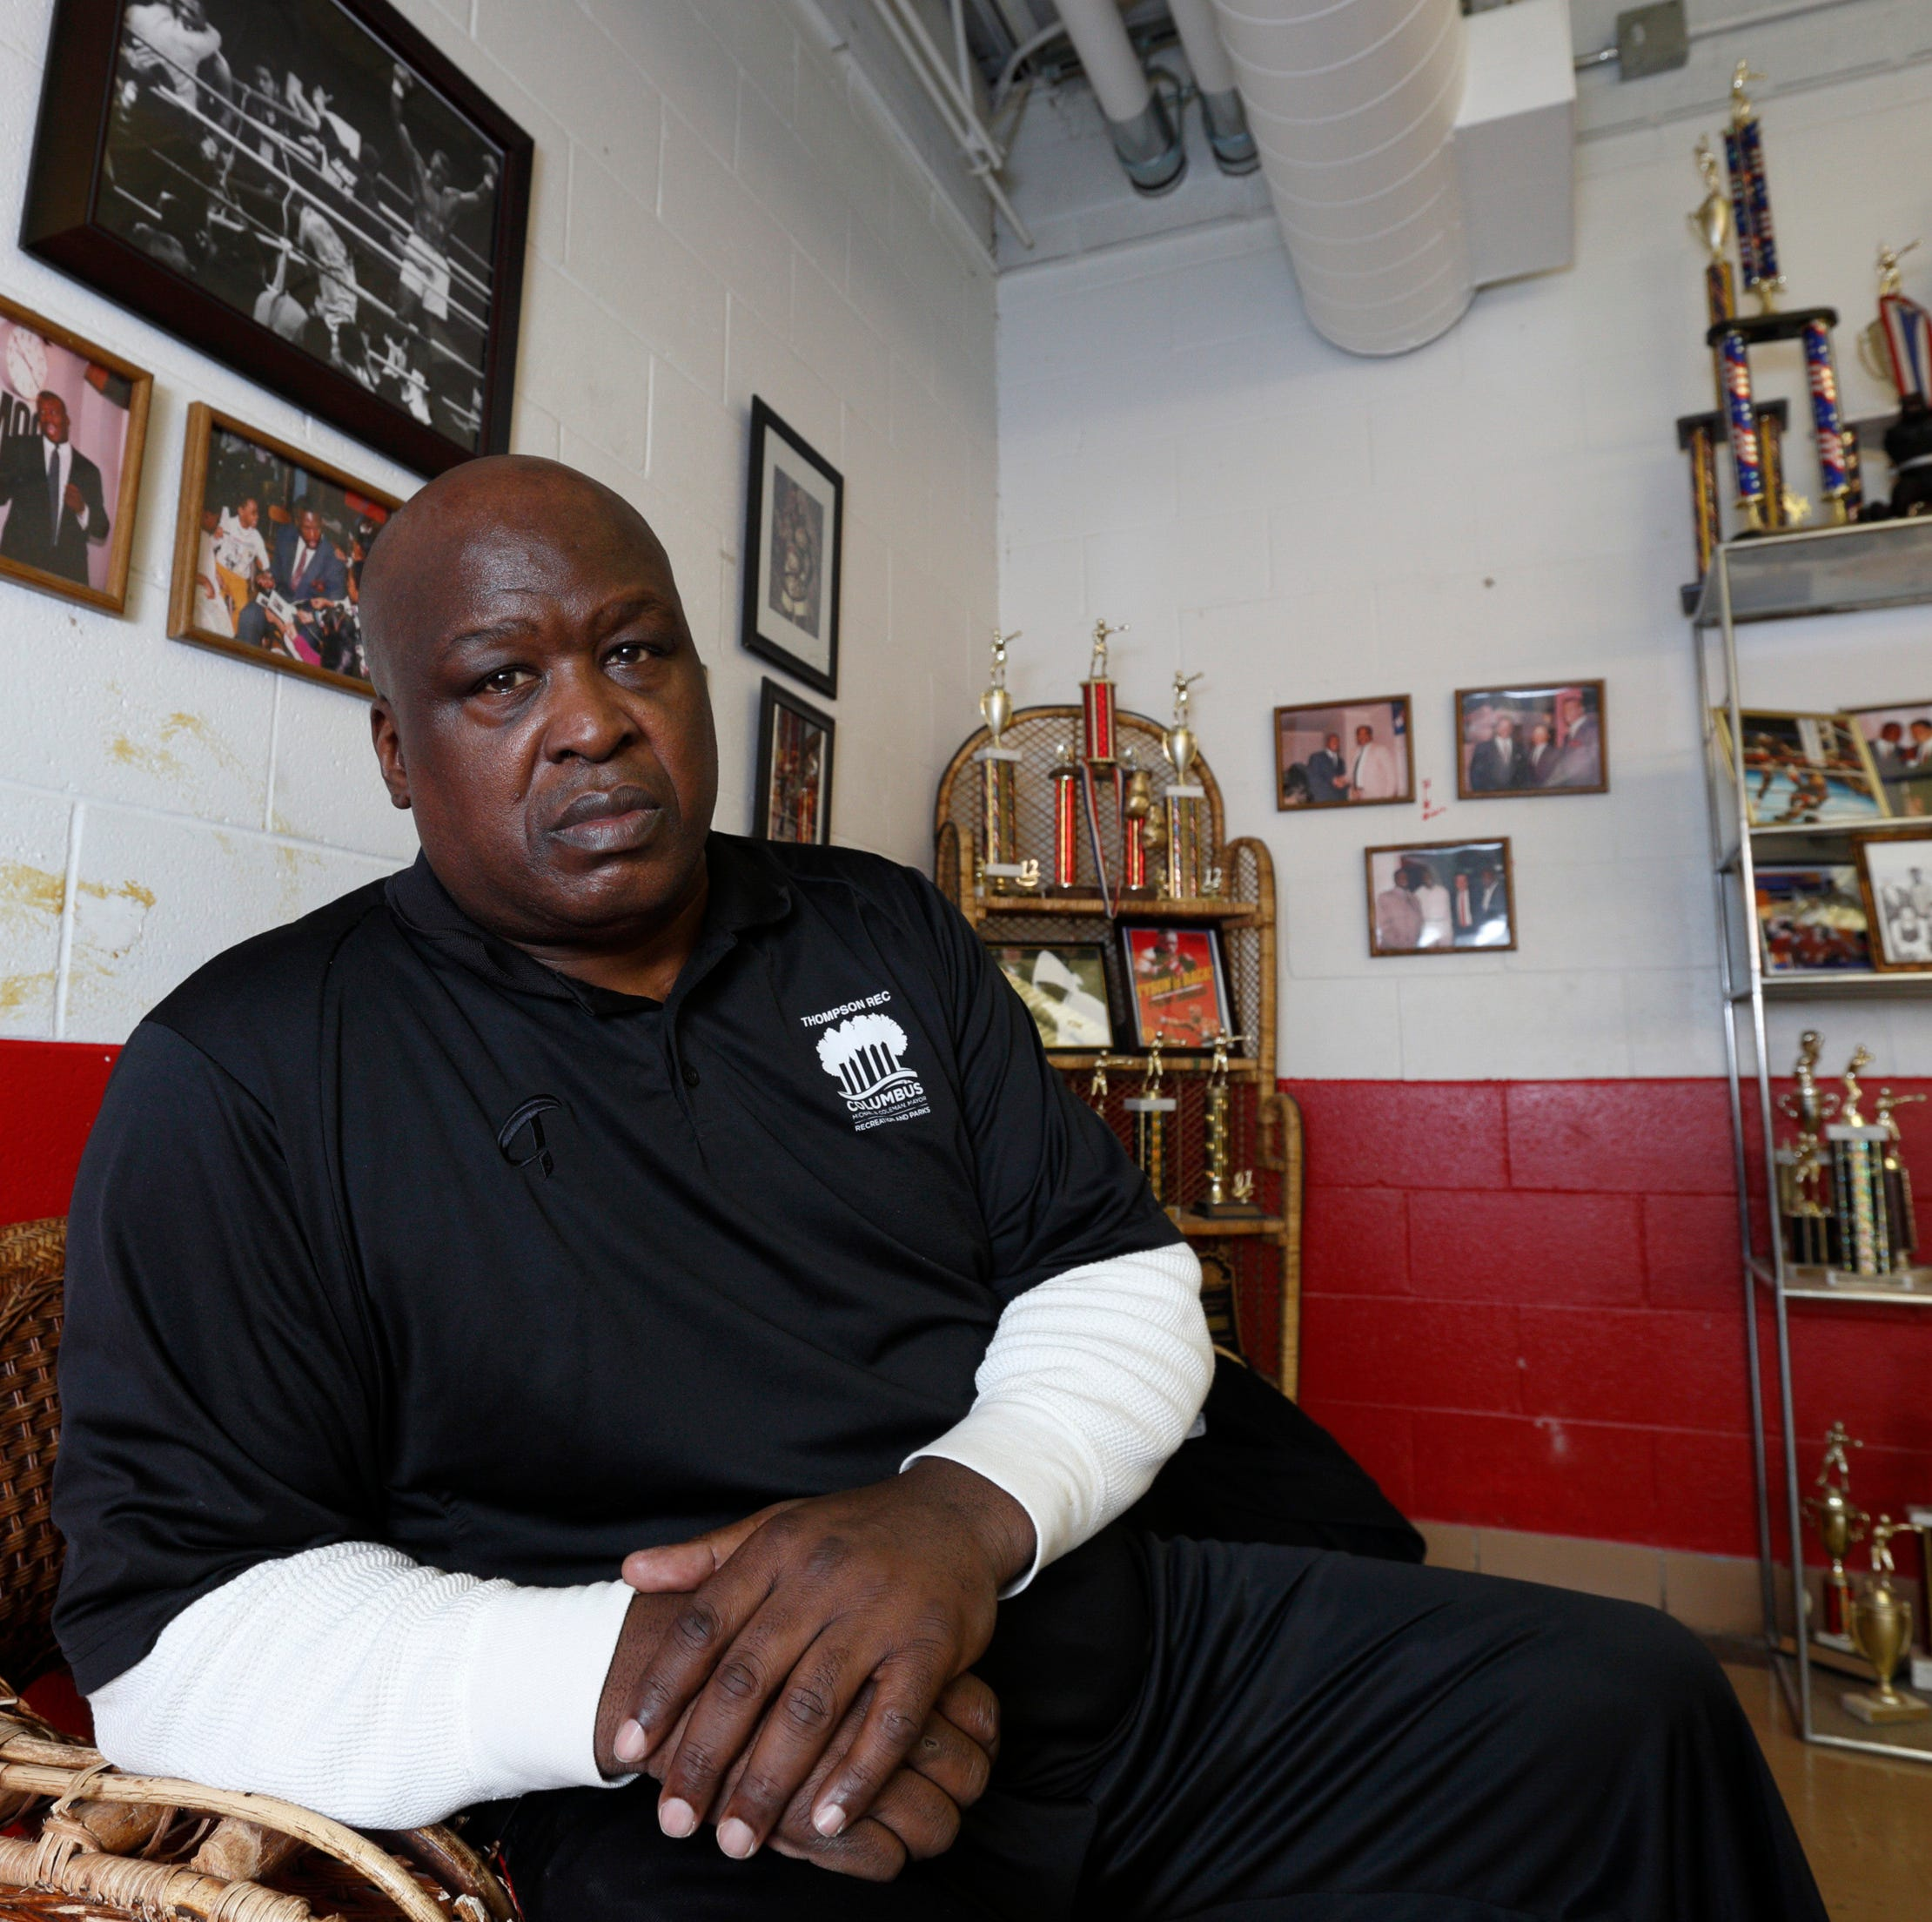 McCurdy: Buster Douglas is the reason we like sports